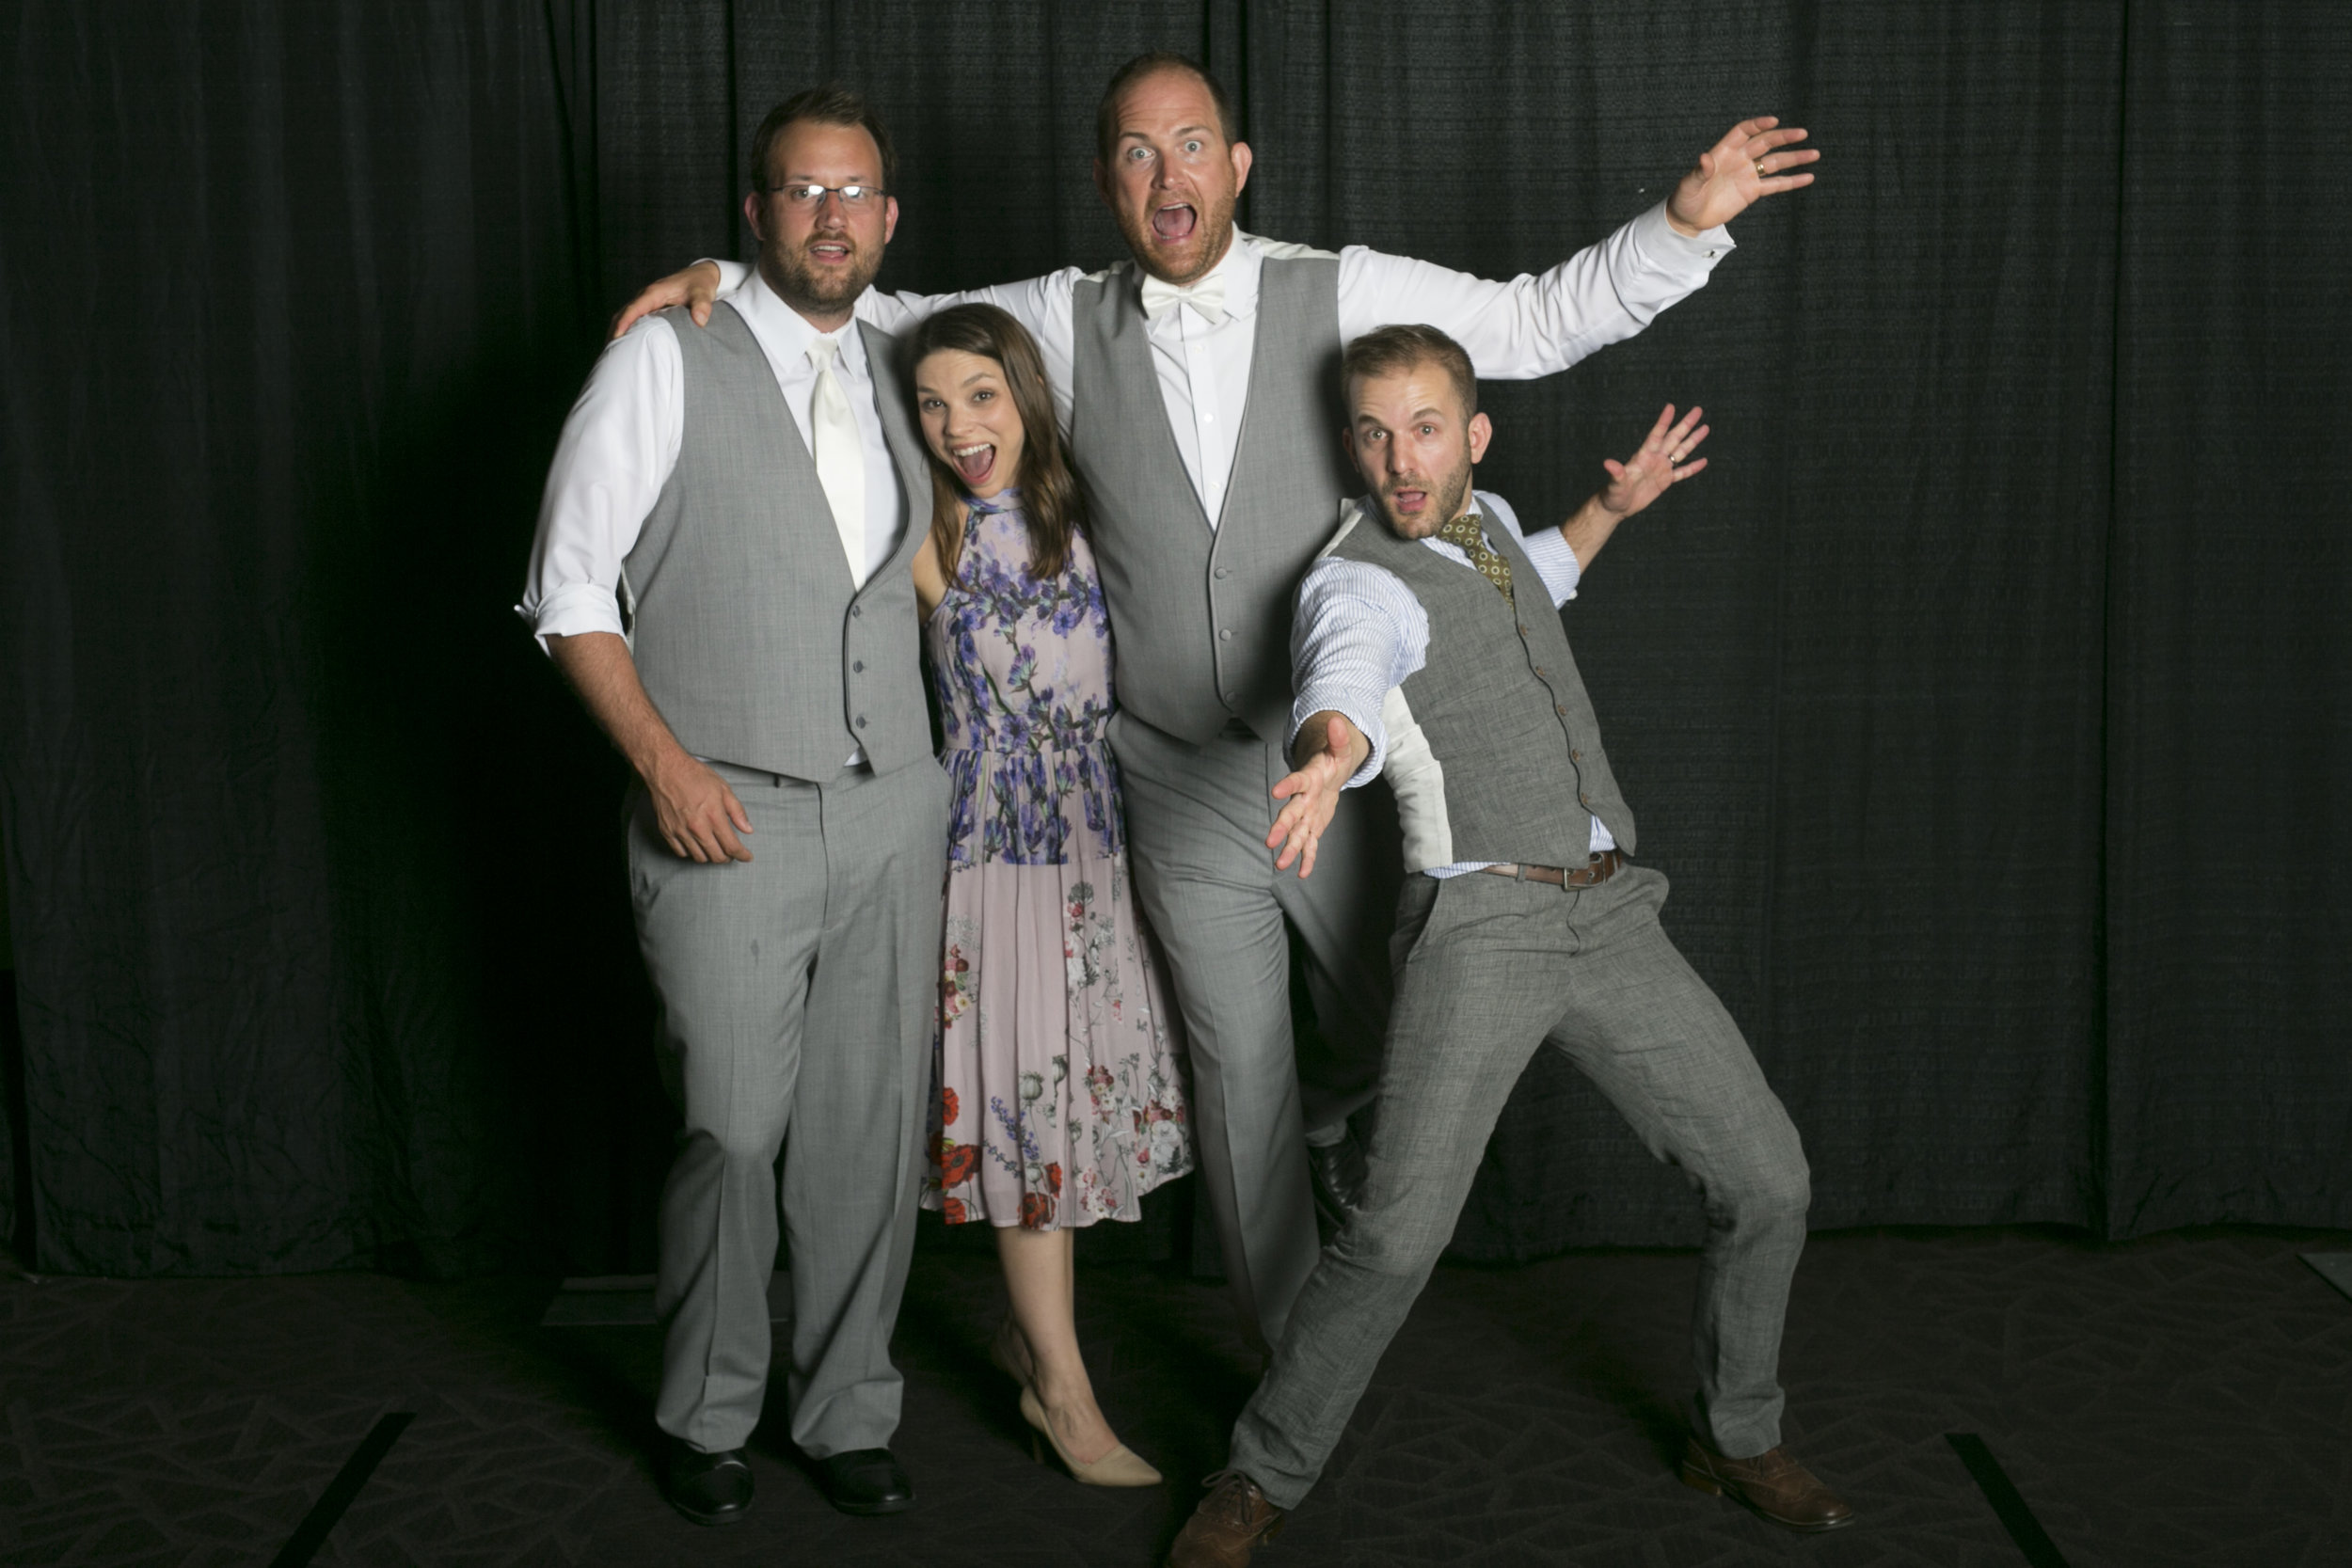 wedding photo booth-153.jpg